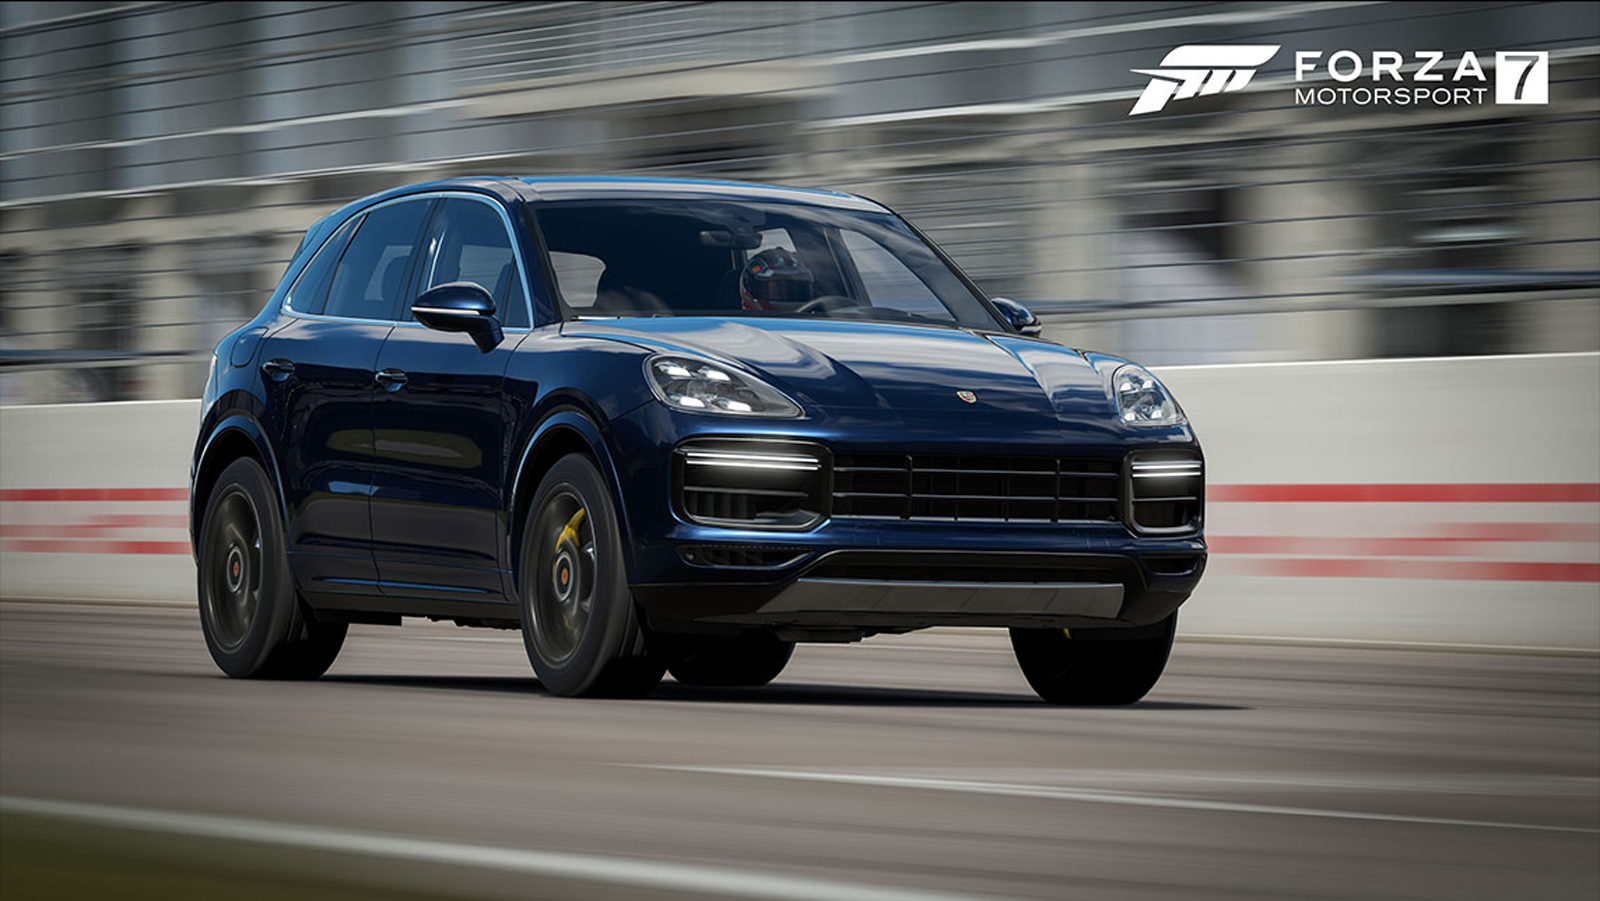 forza 7 39 s latest car pack has a very fitting sponsor. Black Bedroom Furniture Sets. Home Design Ideas